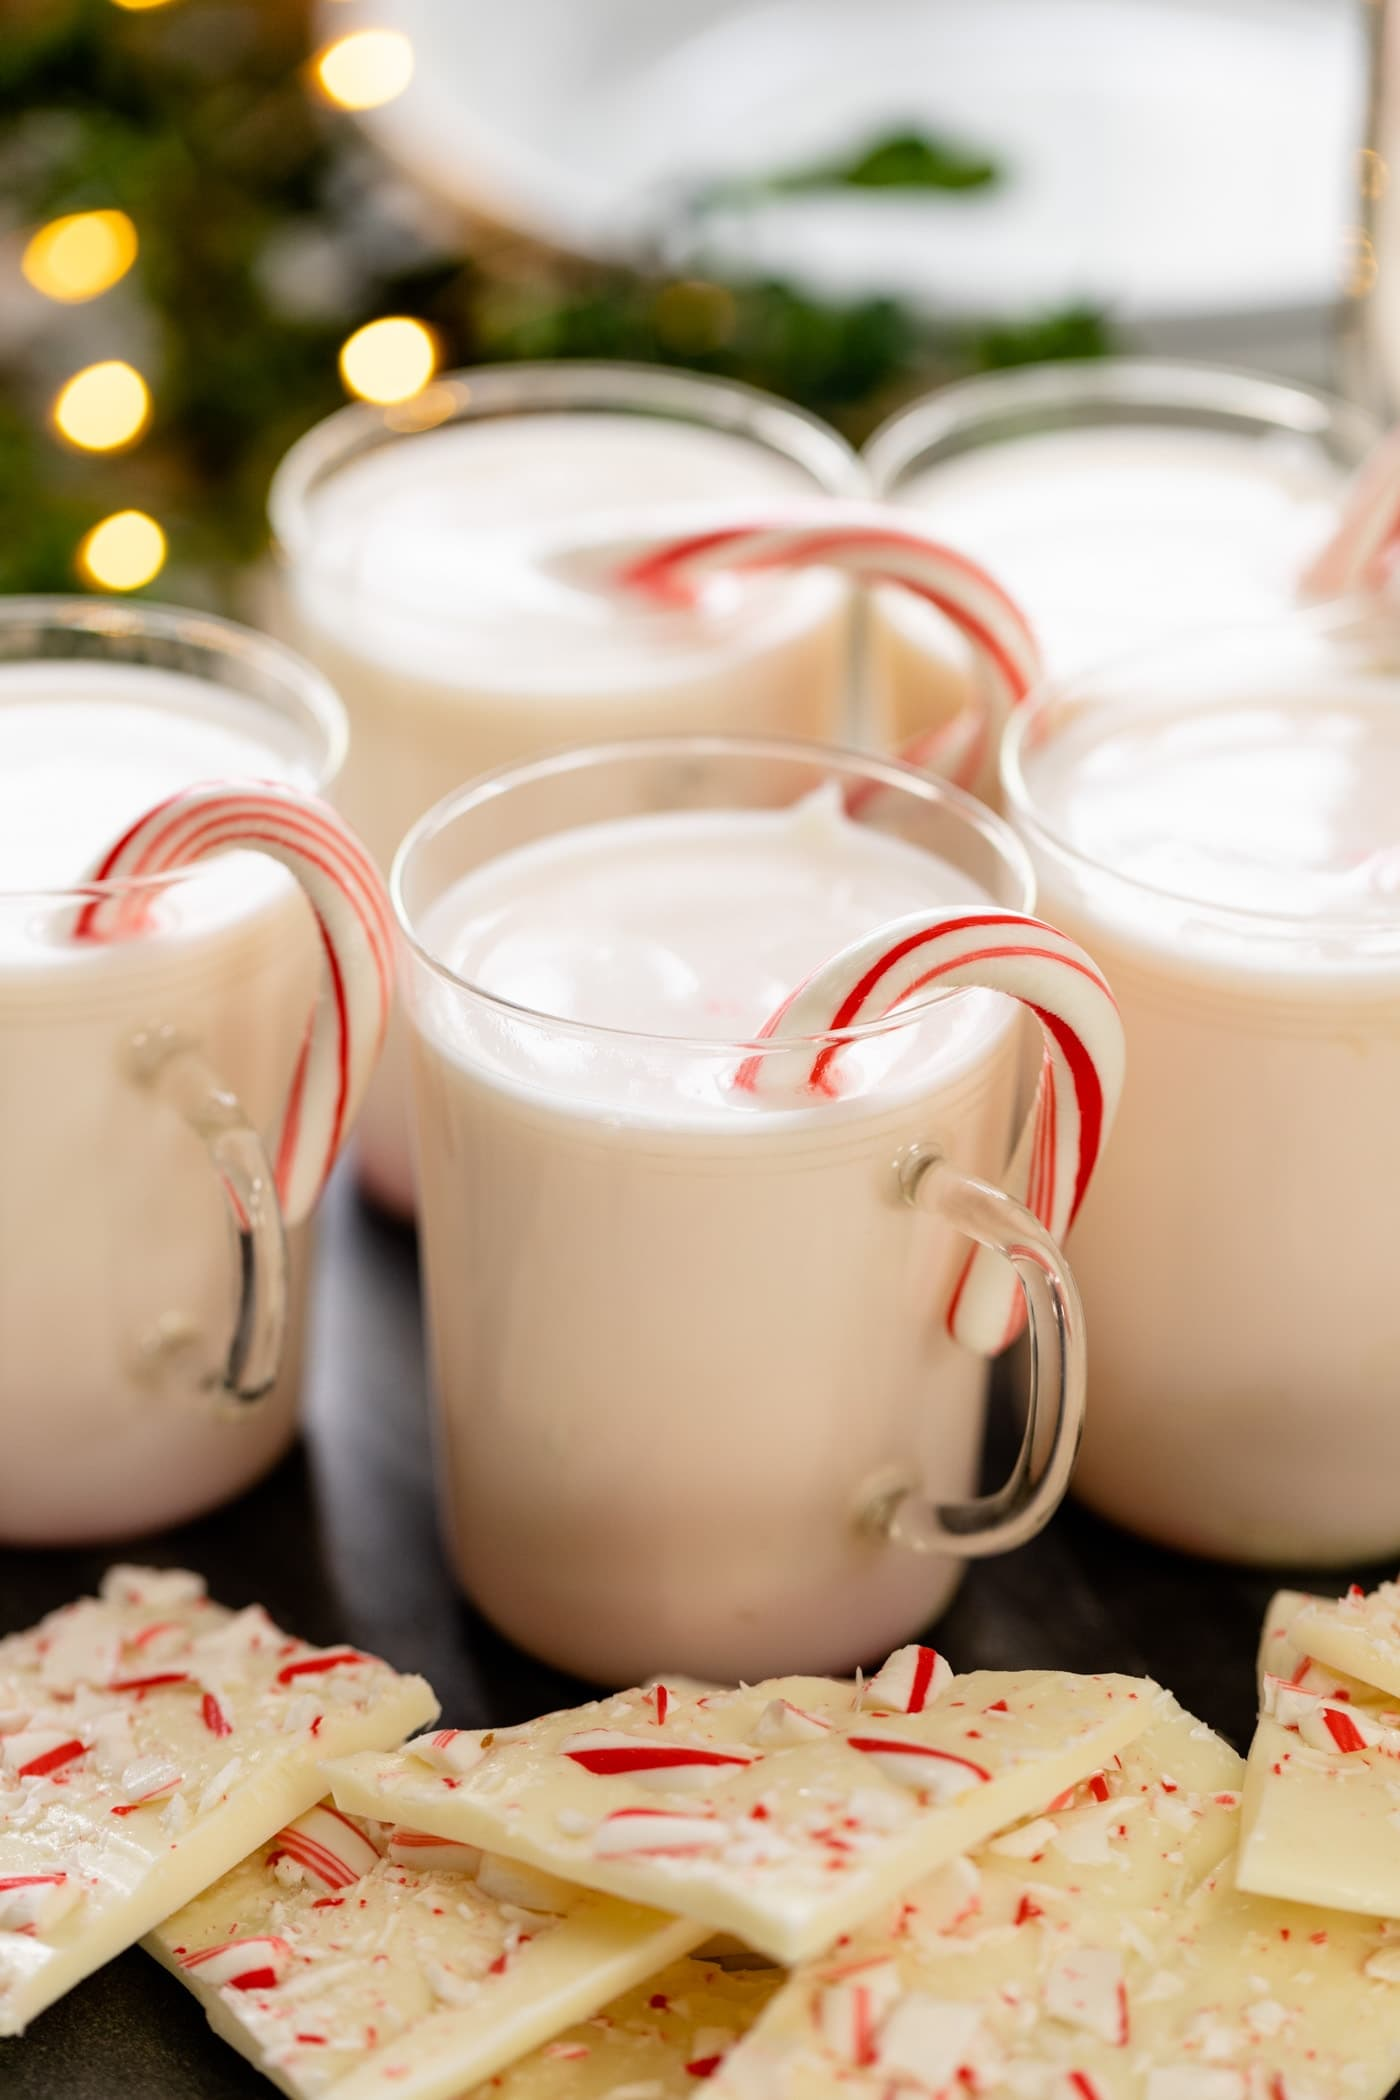 Peppermint flavored white hot chocolate in glass mug with candy cane sitting on edge with extra peppermint bark in front all on white surface with Christmas lights in background